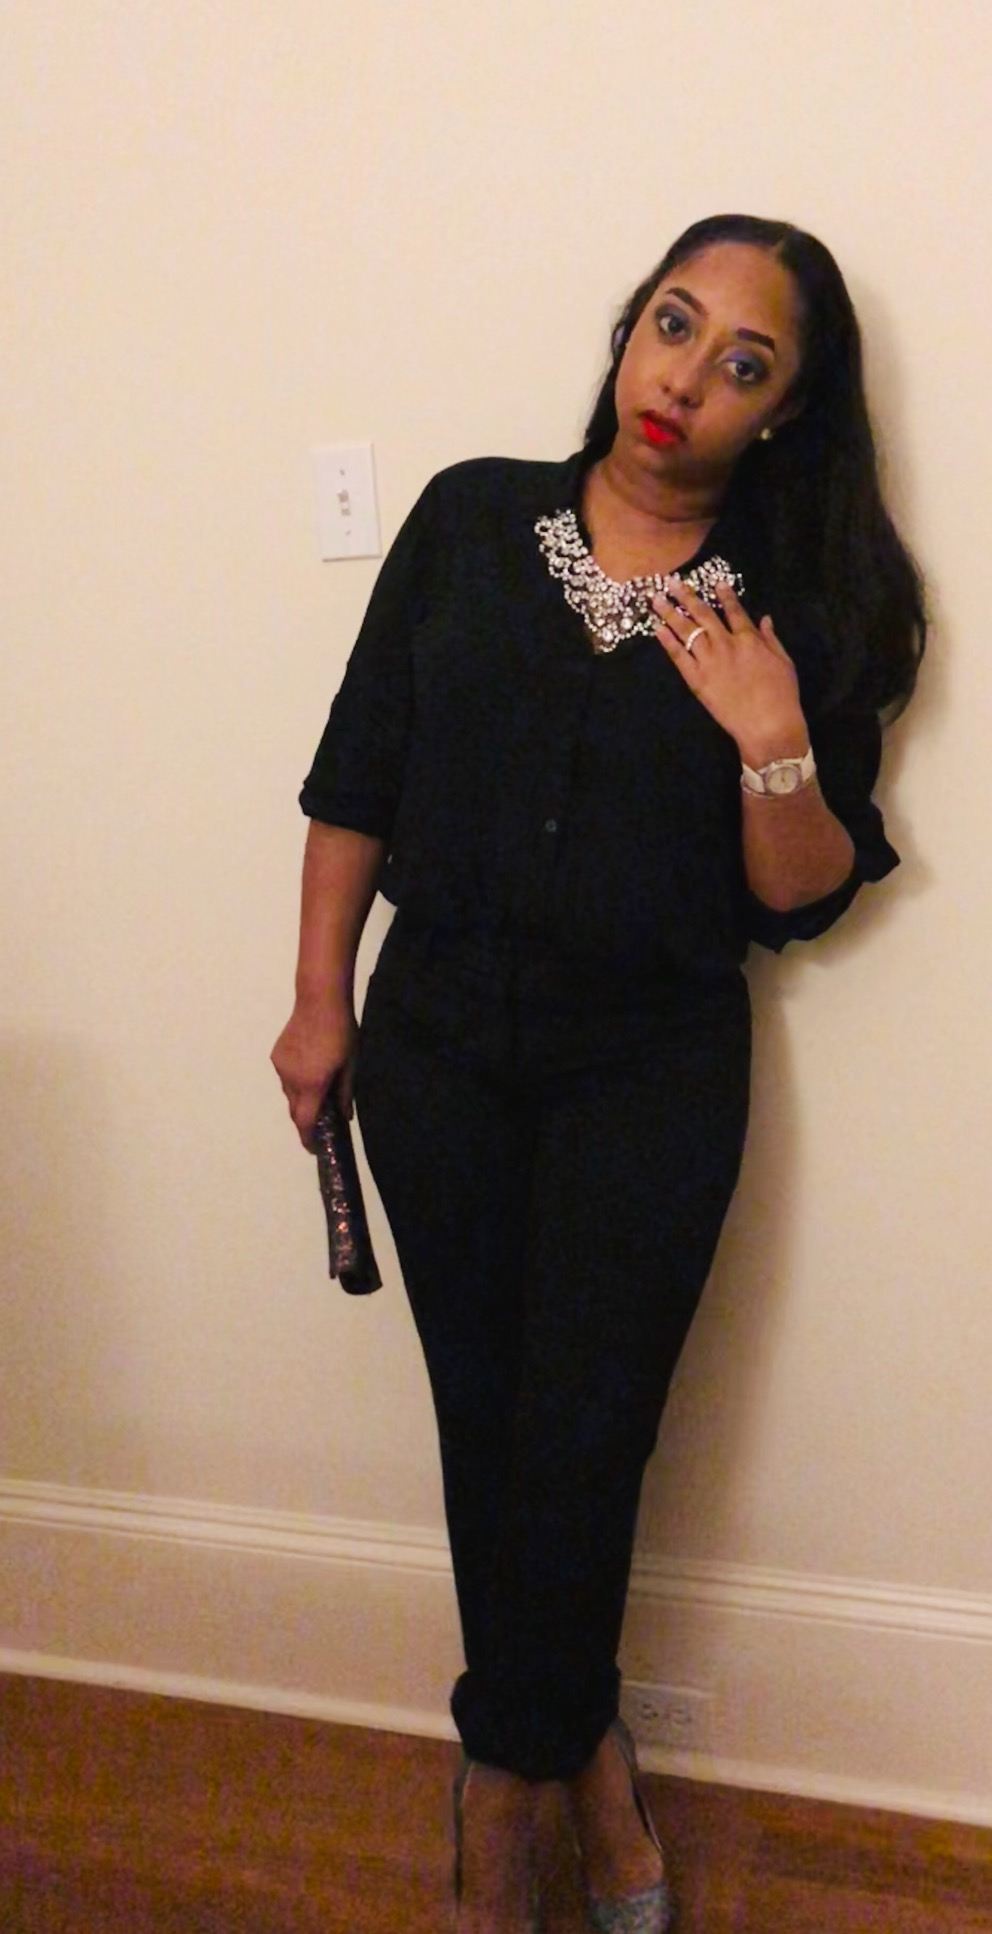 """On my way to a friend's wedding and of course """"there was nothing in my closet to wear"""". You can NEVER go wrong with black. Black is my go-to. But there was a certain look I was going for …  My top is a dressy button up from  Express . I've had these pants for so long that I don't remember where I got them from. You can find black slacks from anywhere. My crossbody (I used it as a clutch) I got from a local boutique called  Frock Candy.  Got my shoes from  Steve Mdden  and thankfully my clutch went well with it. I got my necklace years ago from  BCBG . I wore it to the Espy's after my husband and the Saints won the Super Bowl in 2010.  I wore this (my all black) to a wedding and many of the other beautiful ladies there wore dresses. I rarely EVER wear dresses. I probably have about 6 dresses in total 😂. That just isn't me. Don't get me wrong now, if I'm in the mood I will slide my ass in a dress 😩😂. But …. All black is not only for death …. You can make it work for ANYTHING you want!  How do you feel about all black?  ❤️Feel Free to comment and share❤️"""